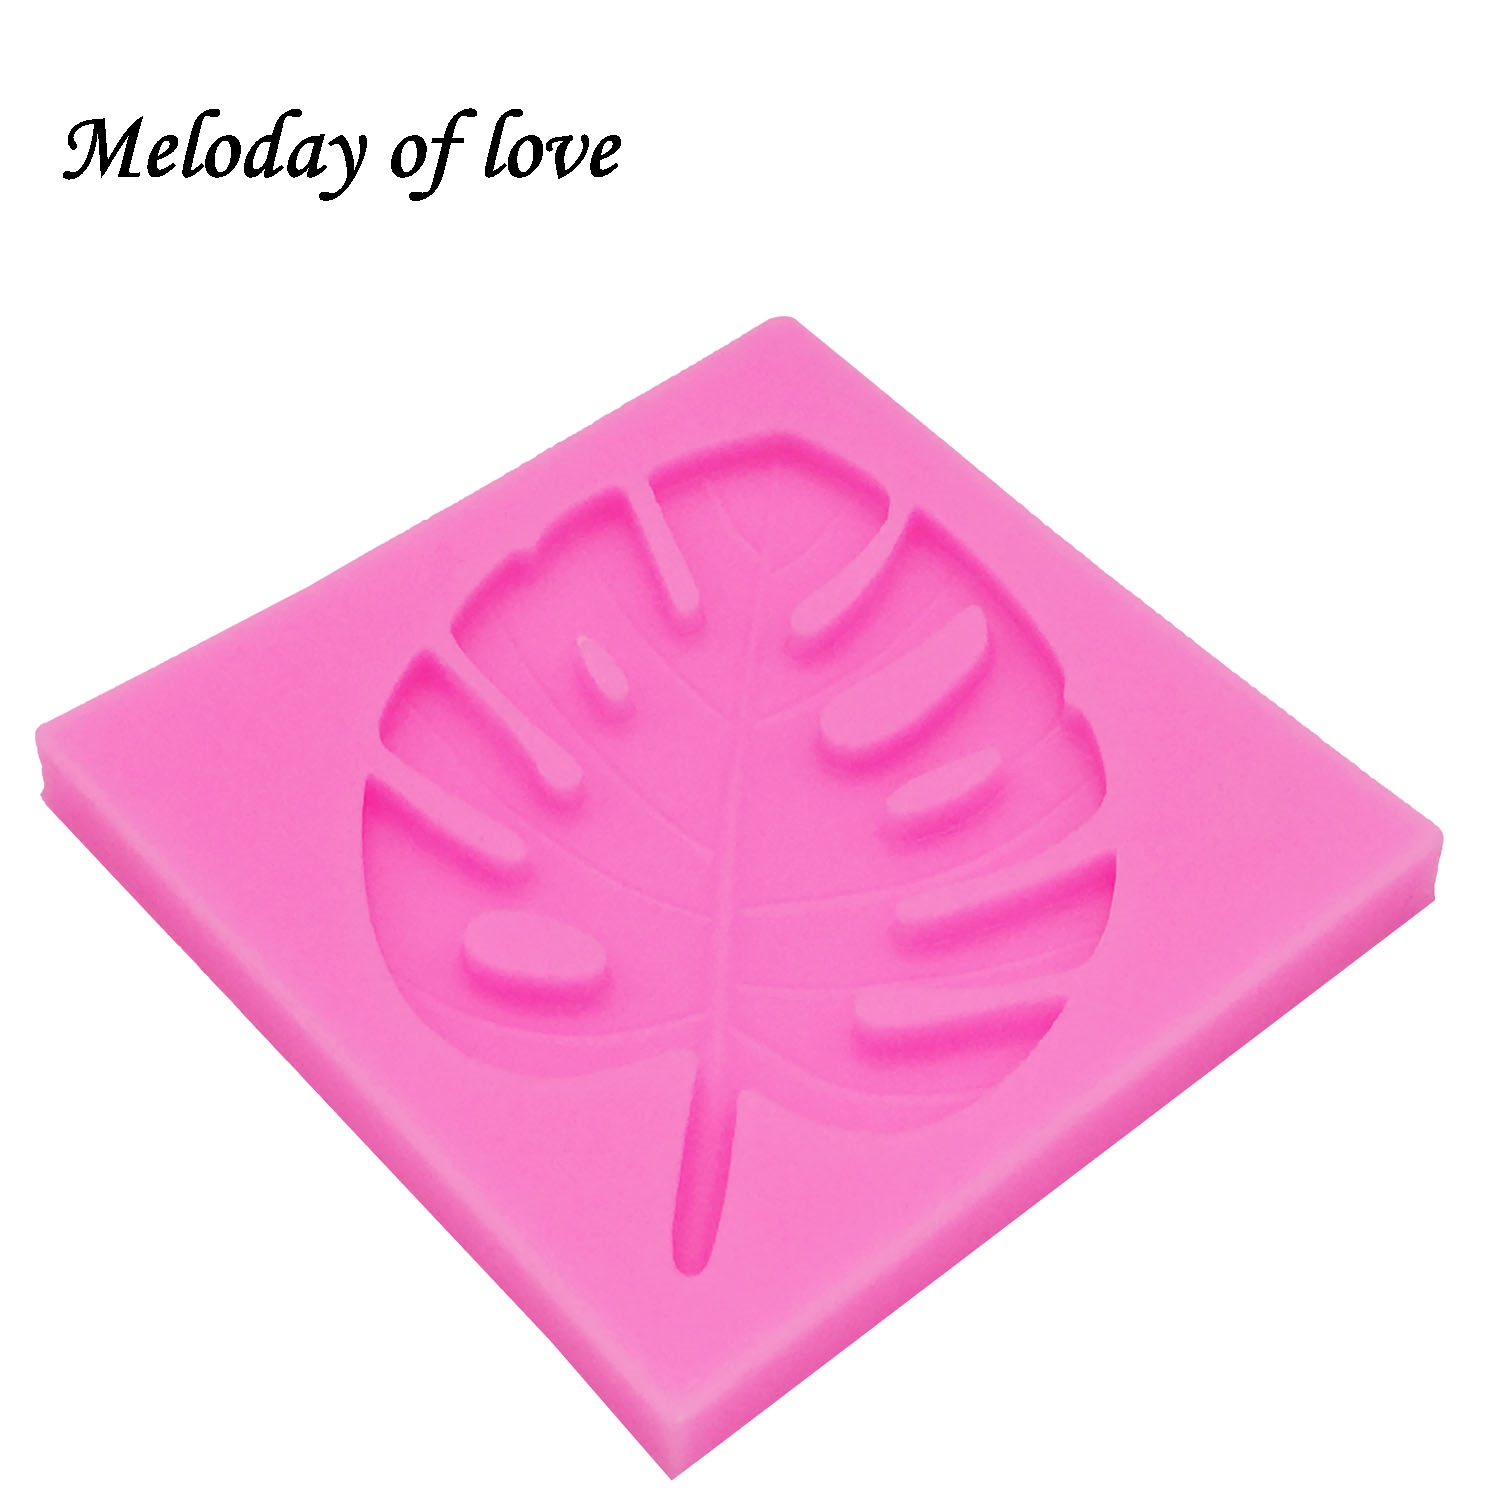 3D tree leaf molds Sugarcraft Leavf silicone mold Turtle leaf fondant cake decorating tools Leaves chocolate gumpaste mold T1134 in Cake Molds from Home Garden